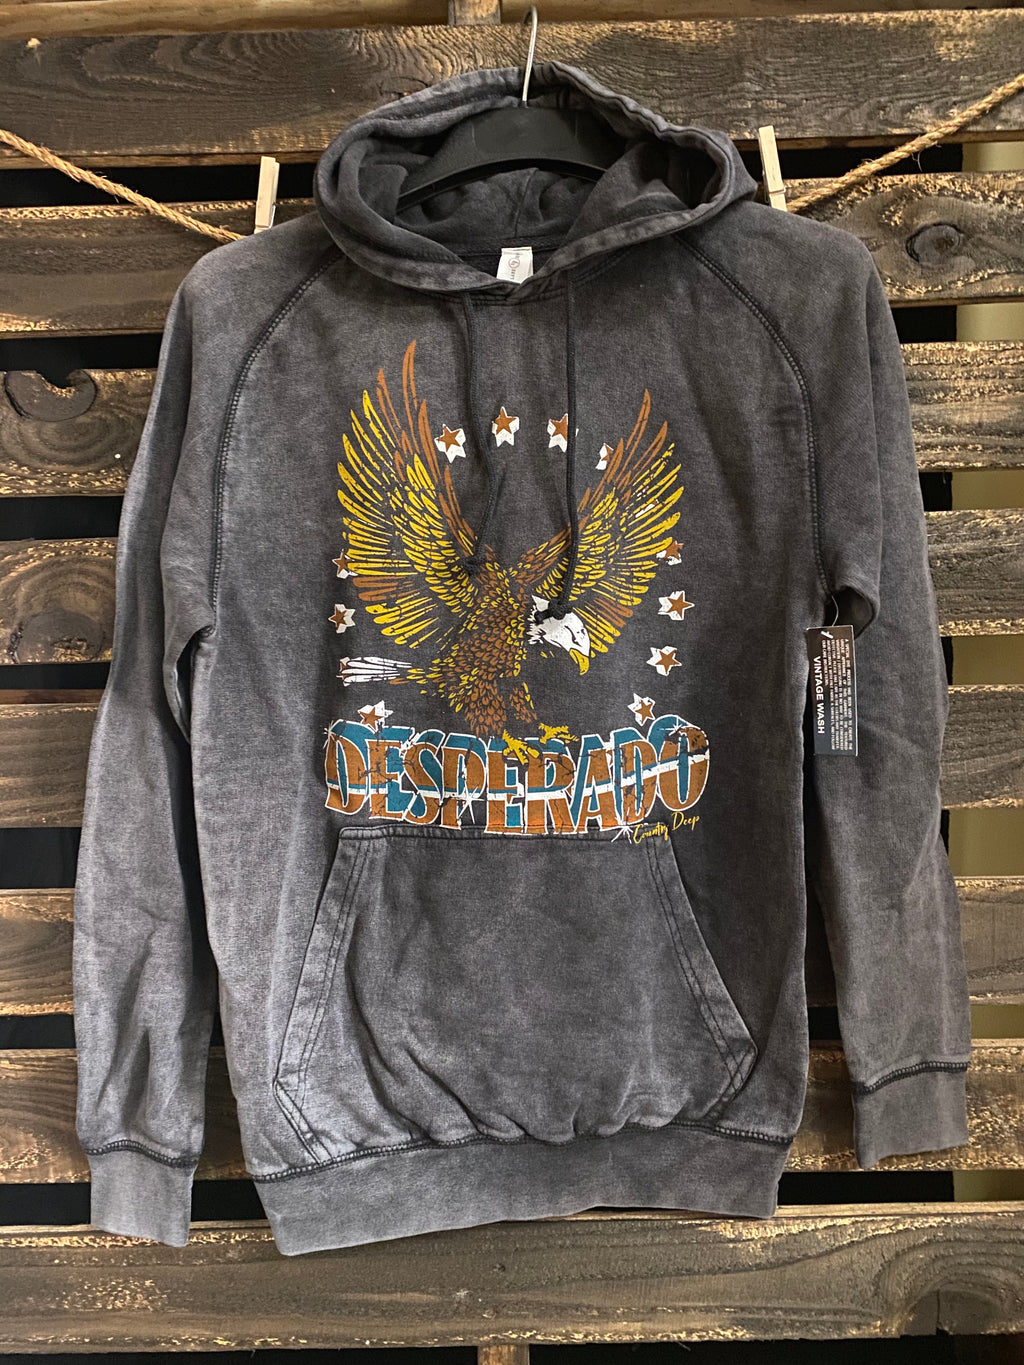 Desperado acid wash Vintage Hooded sweatshirt